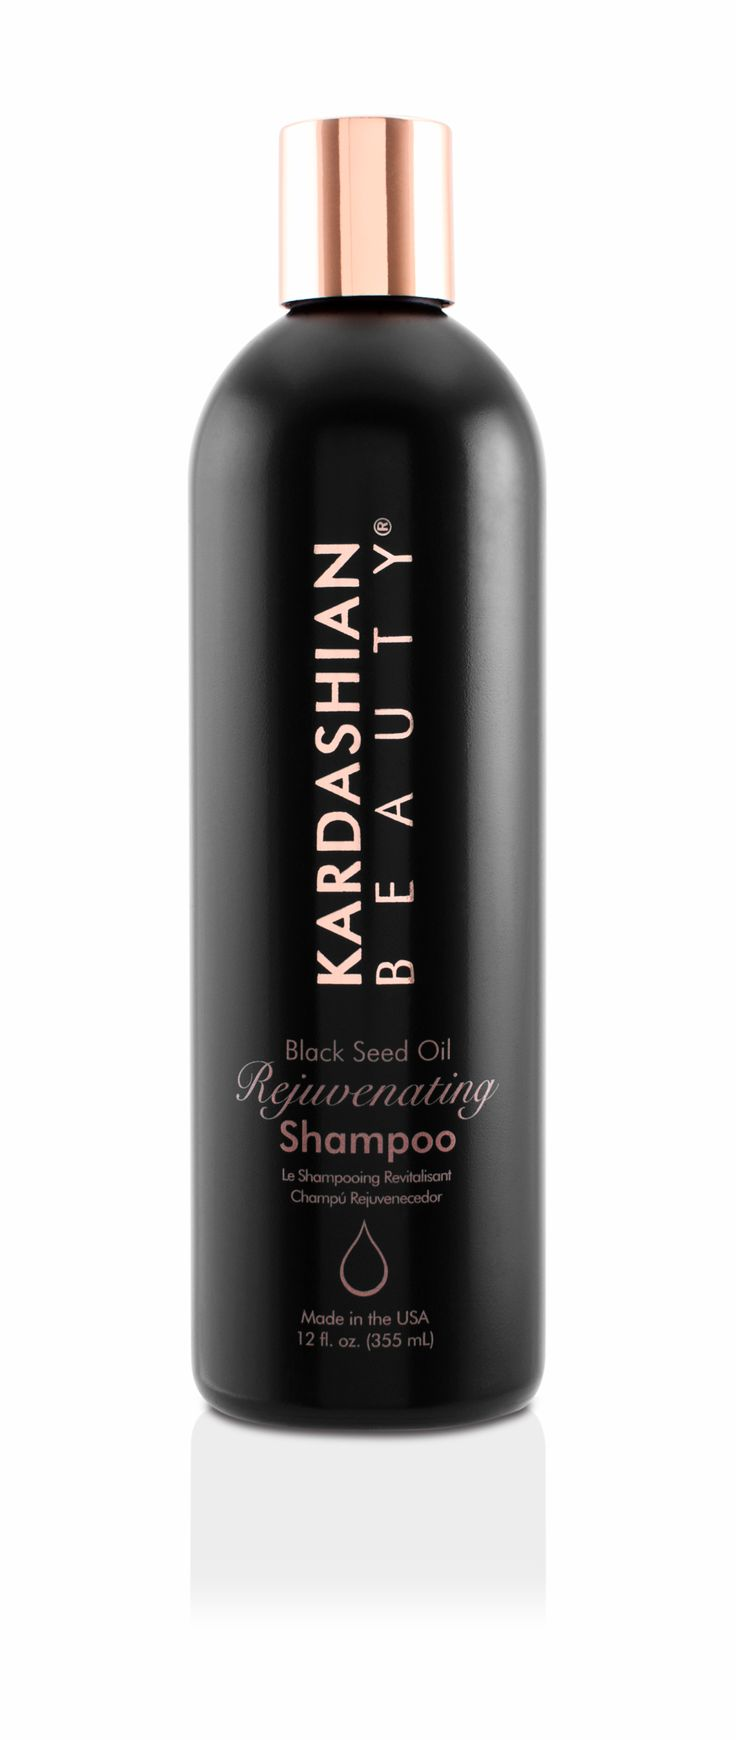 I Tried The Kardashian Beauty Black Seed Oil Hair Care Line So You Dont Have To